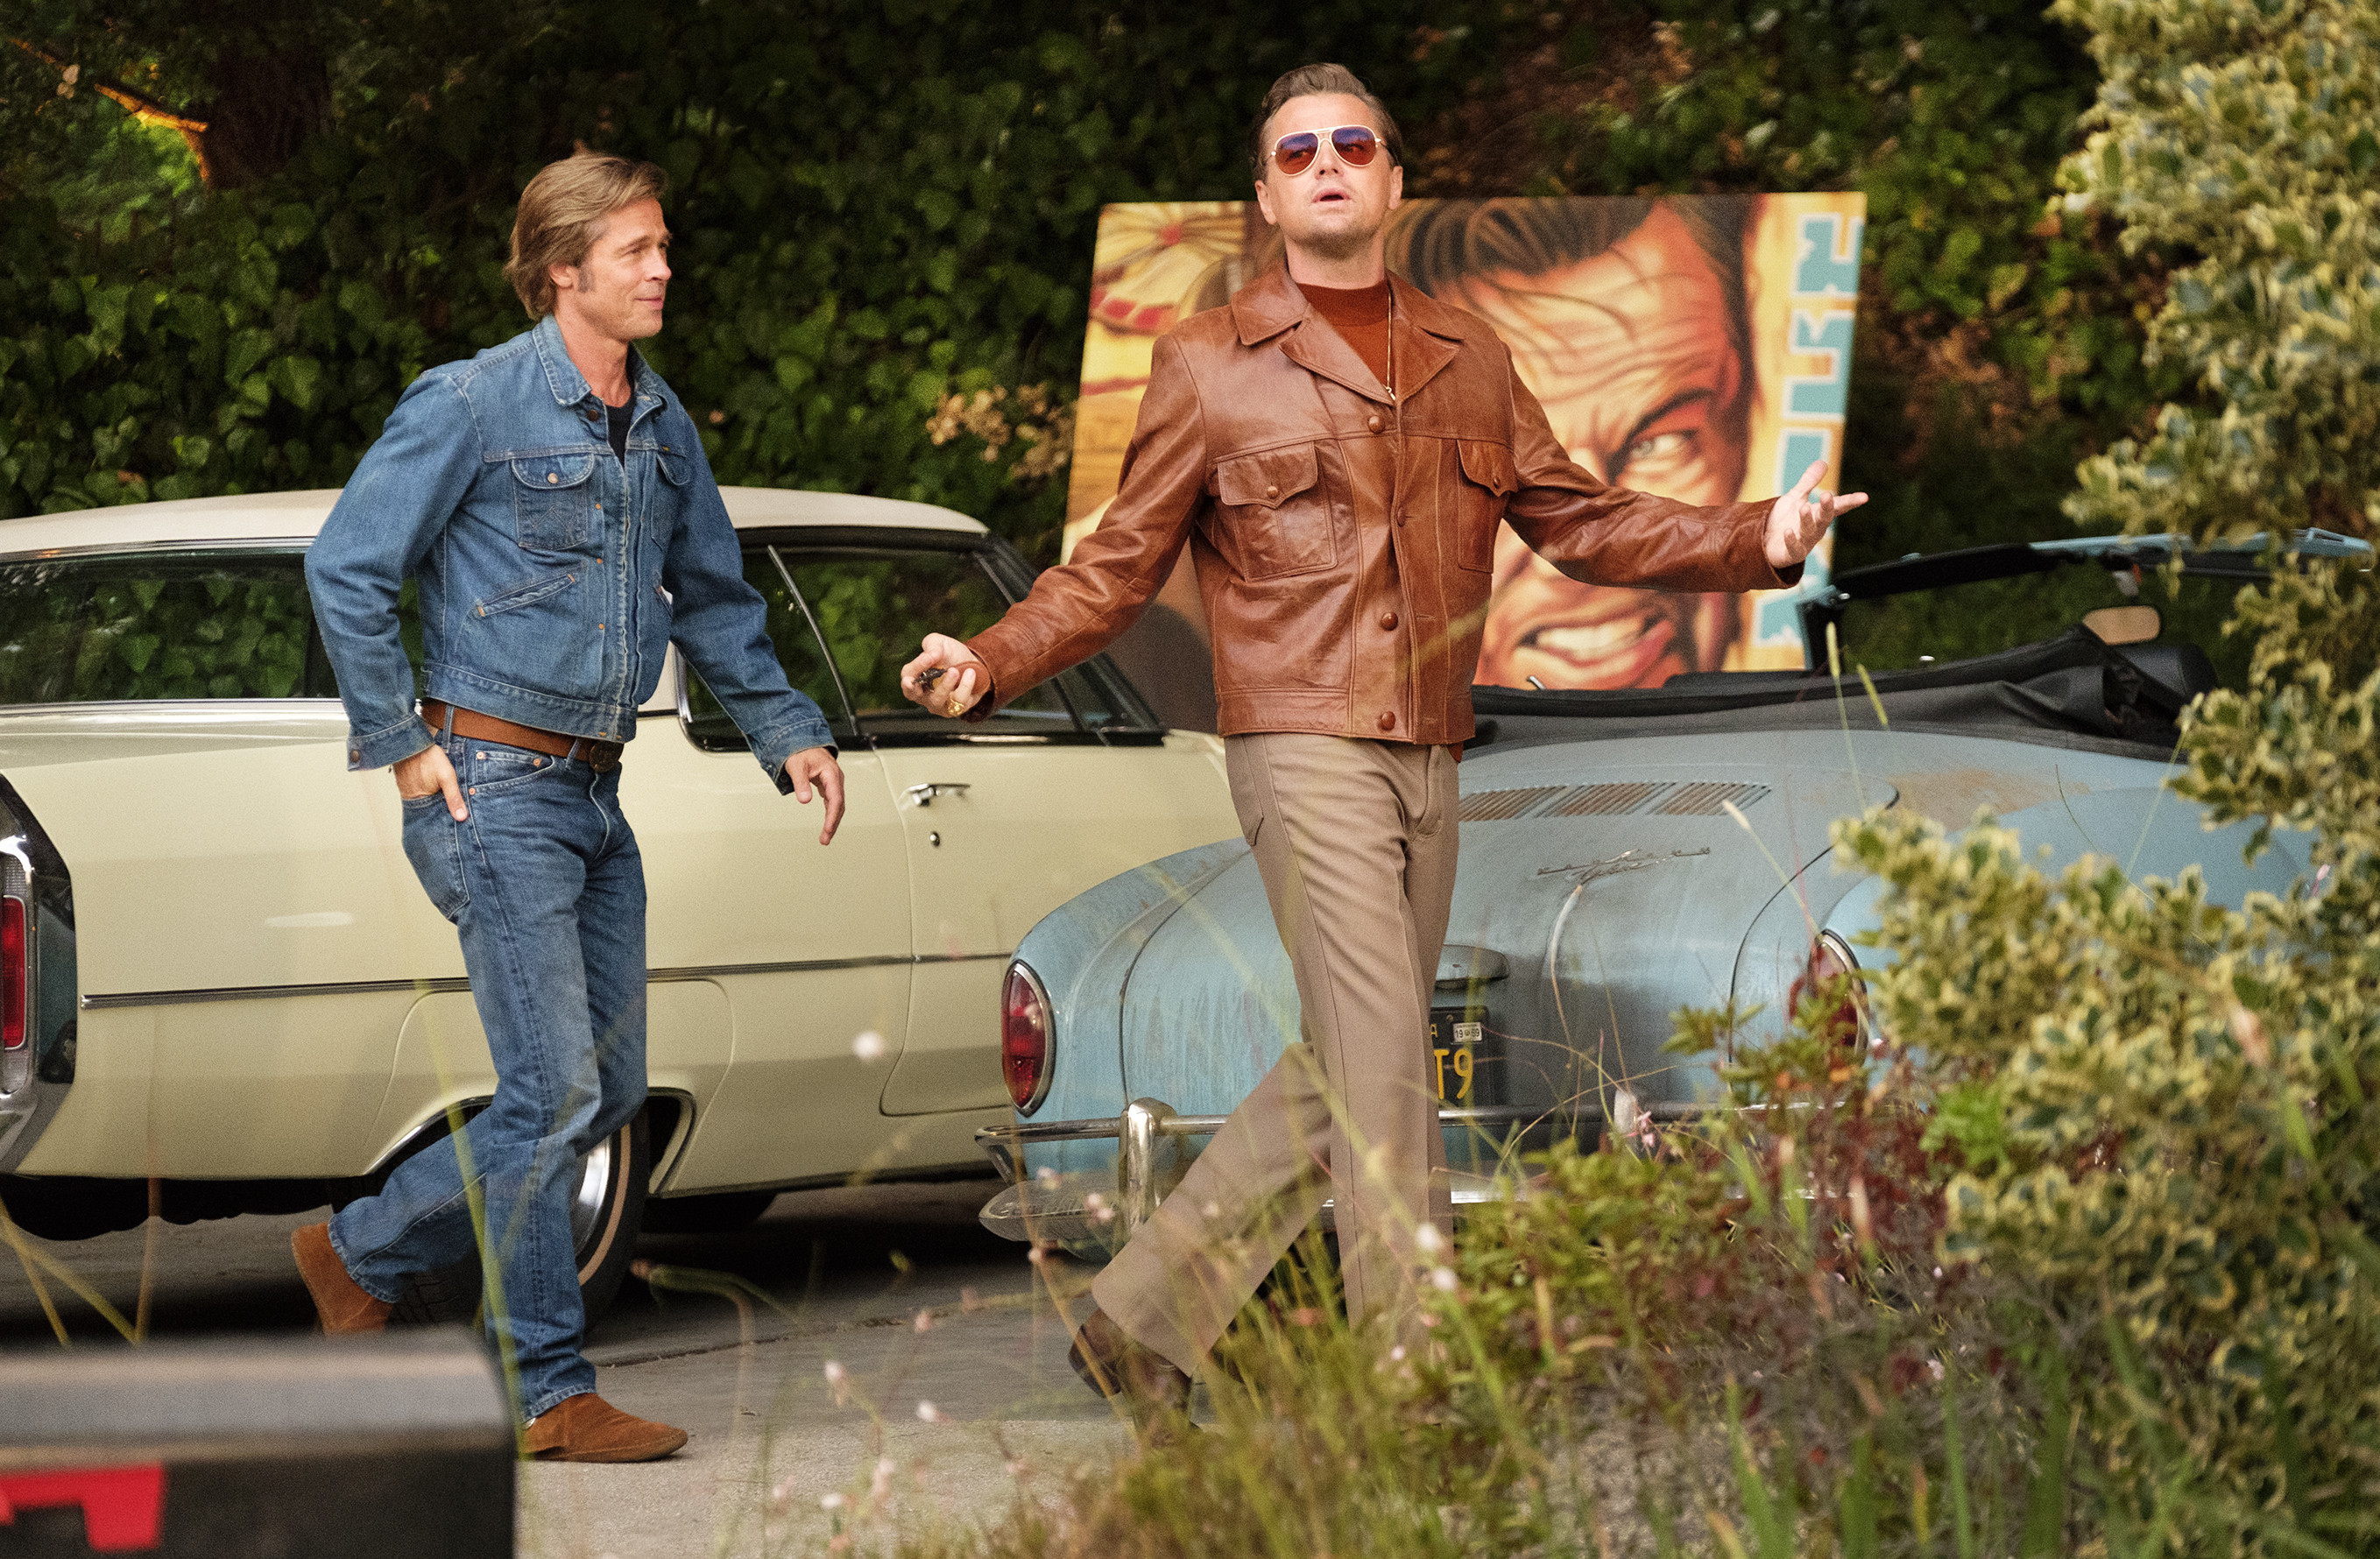 Solothurner Sommerfilme: Once Upon a Time in Hollywood